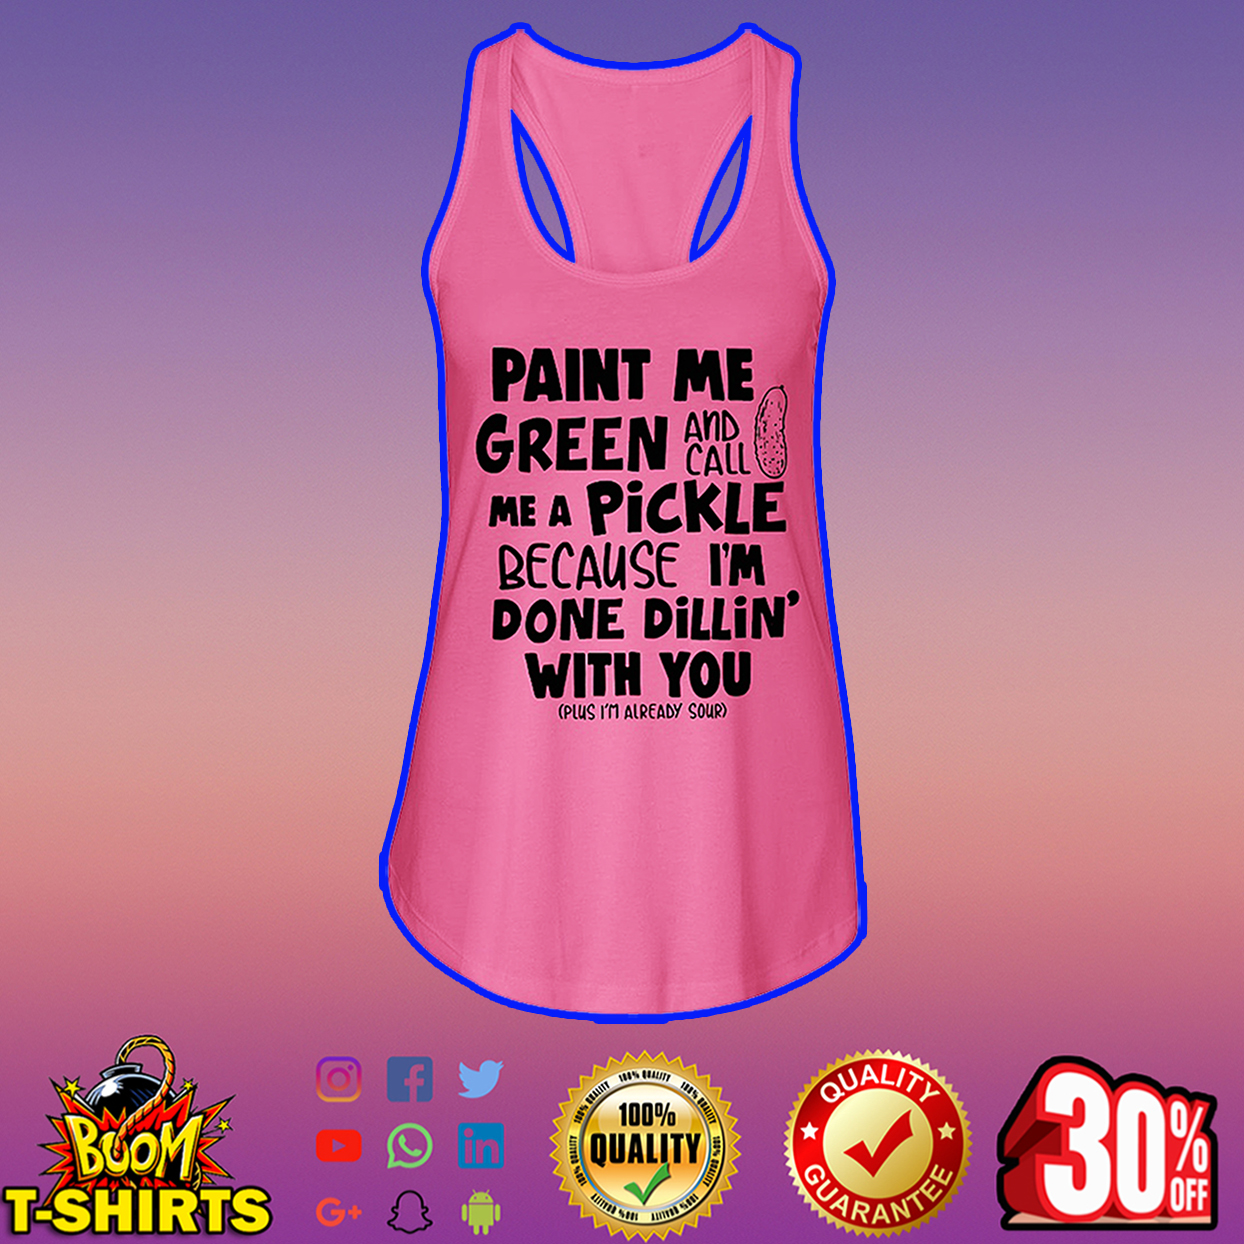 Paint me green and call me a pickle because I'm done dillin' with you flowy tank